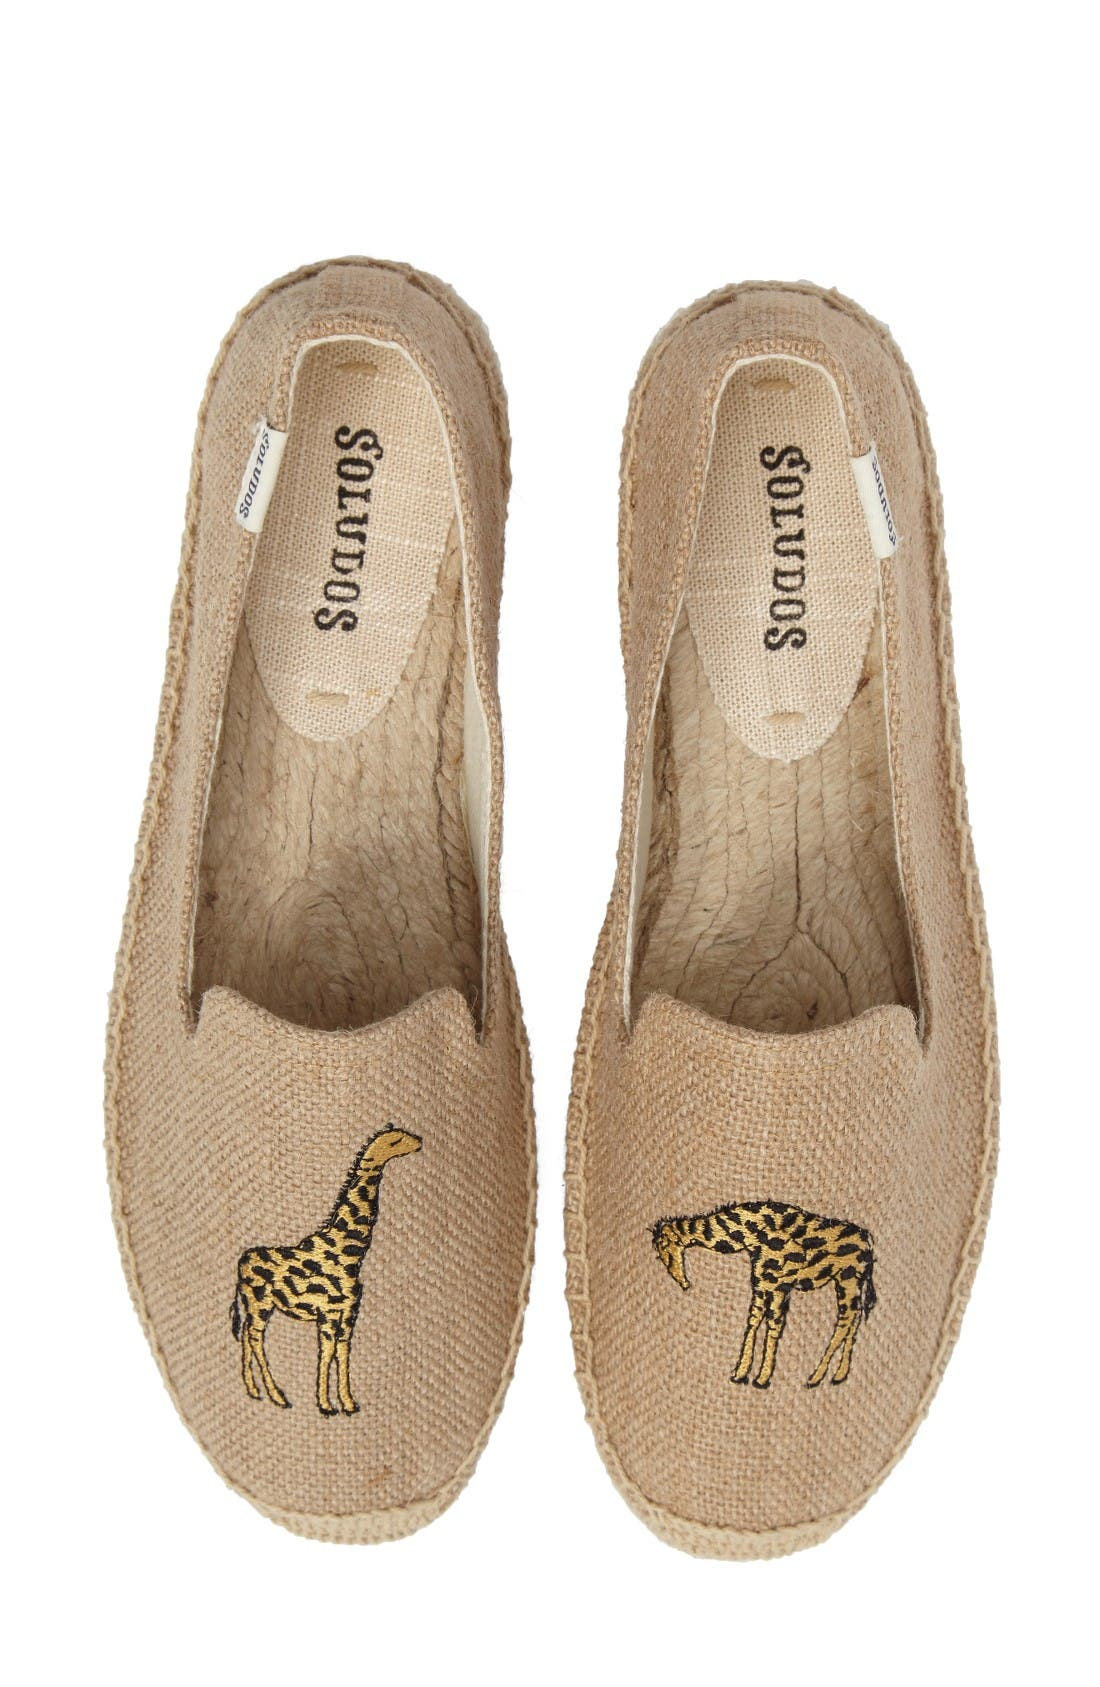 Giraffe Espadrille Flat,                             Main thumbnail 1, color,                             Natural